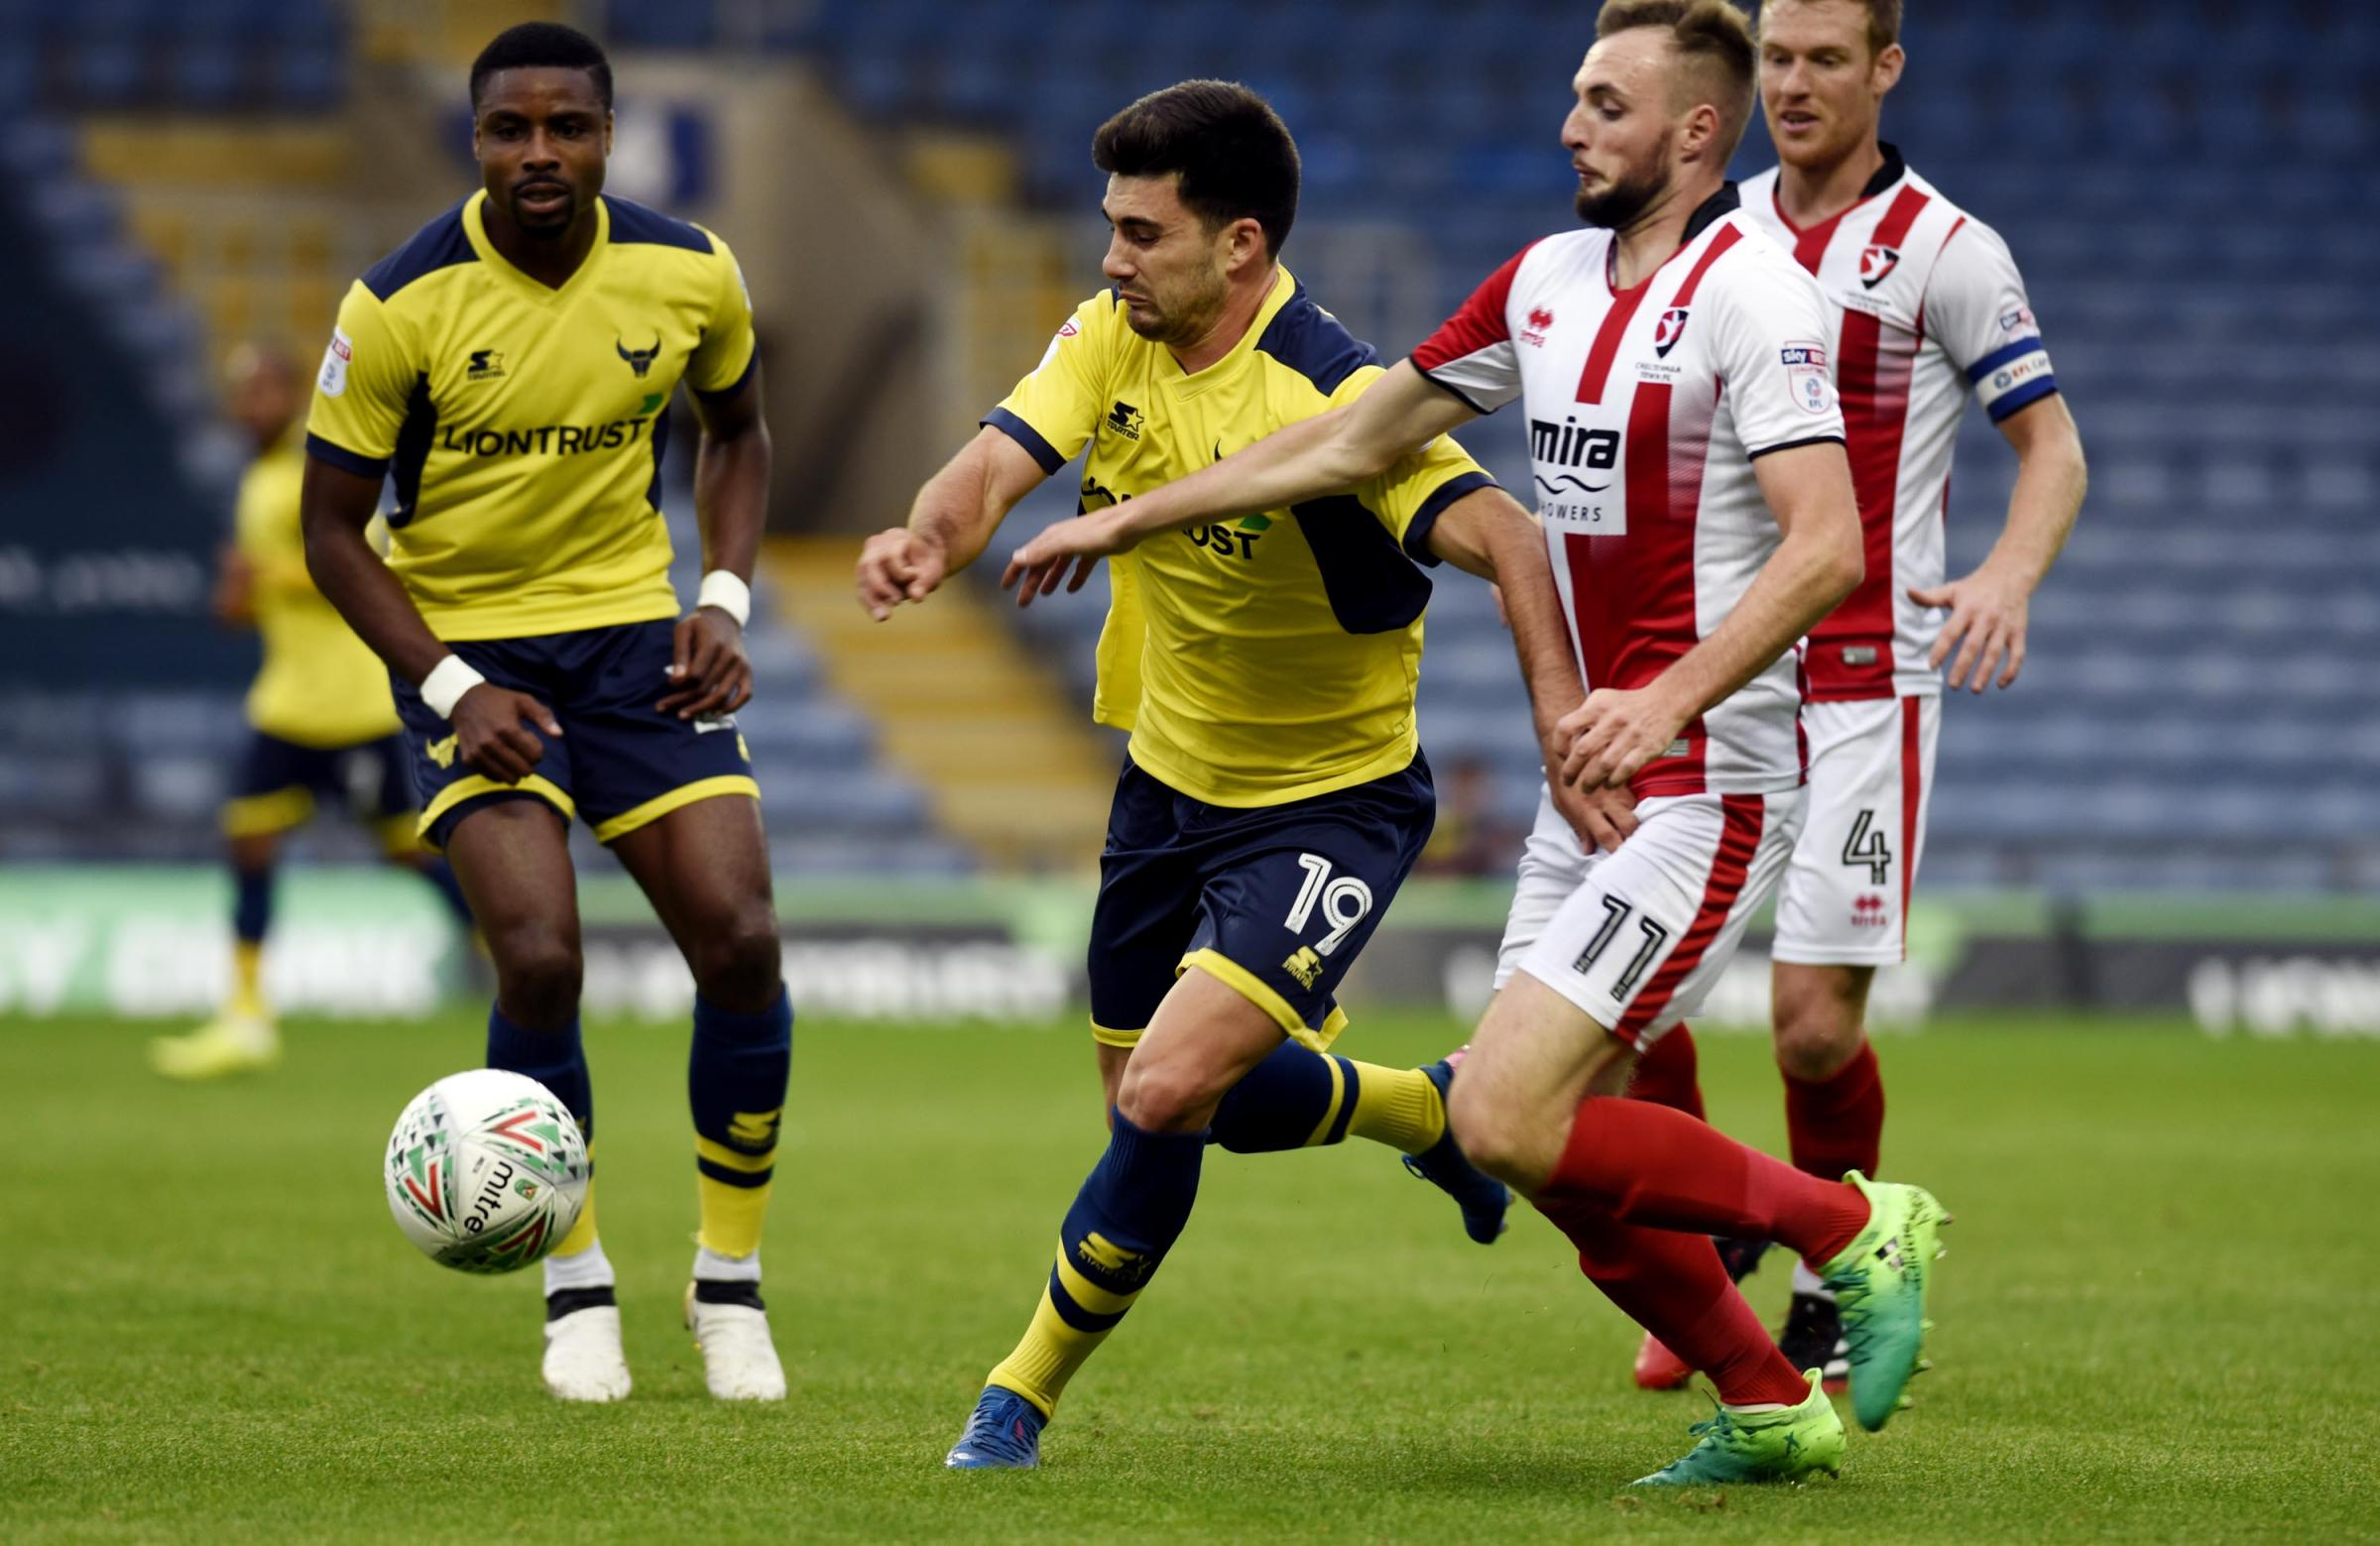 Xemi (No 19) was on target for Oxford United the last time they faced Cheltenham Town  Picture: David Fleming